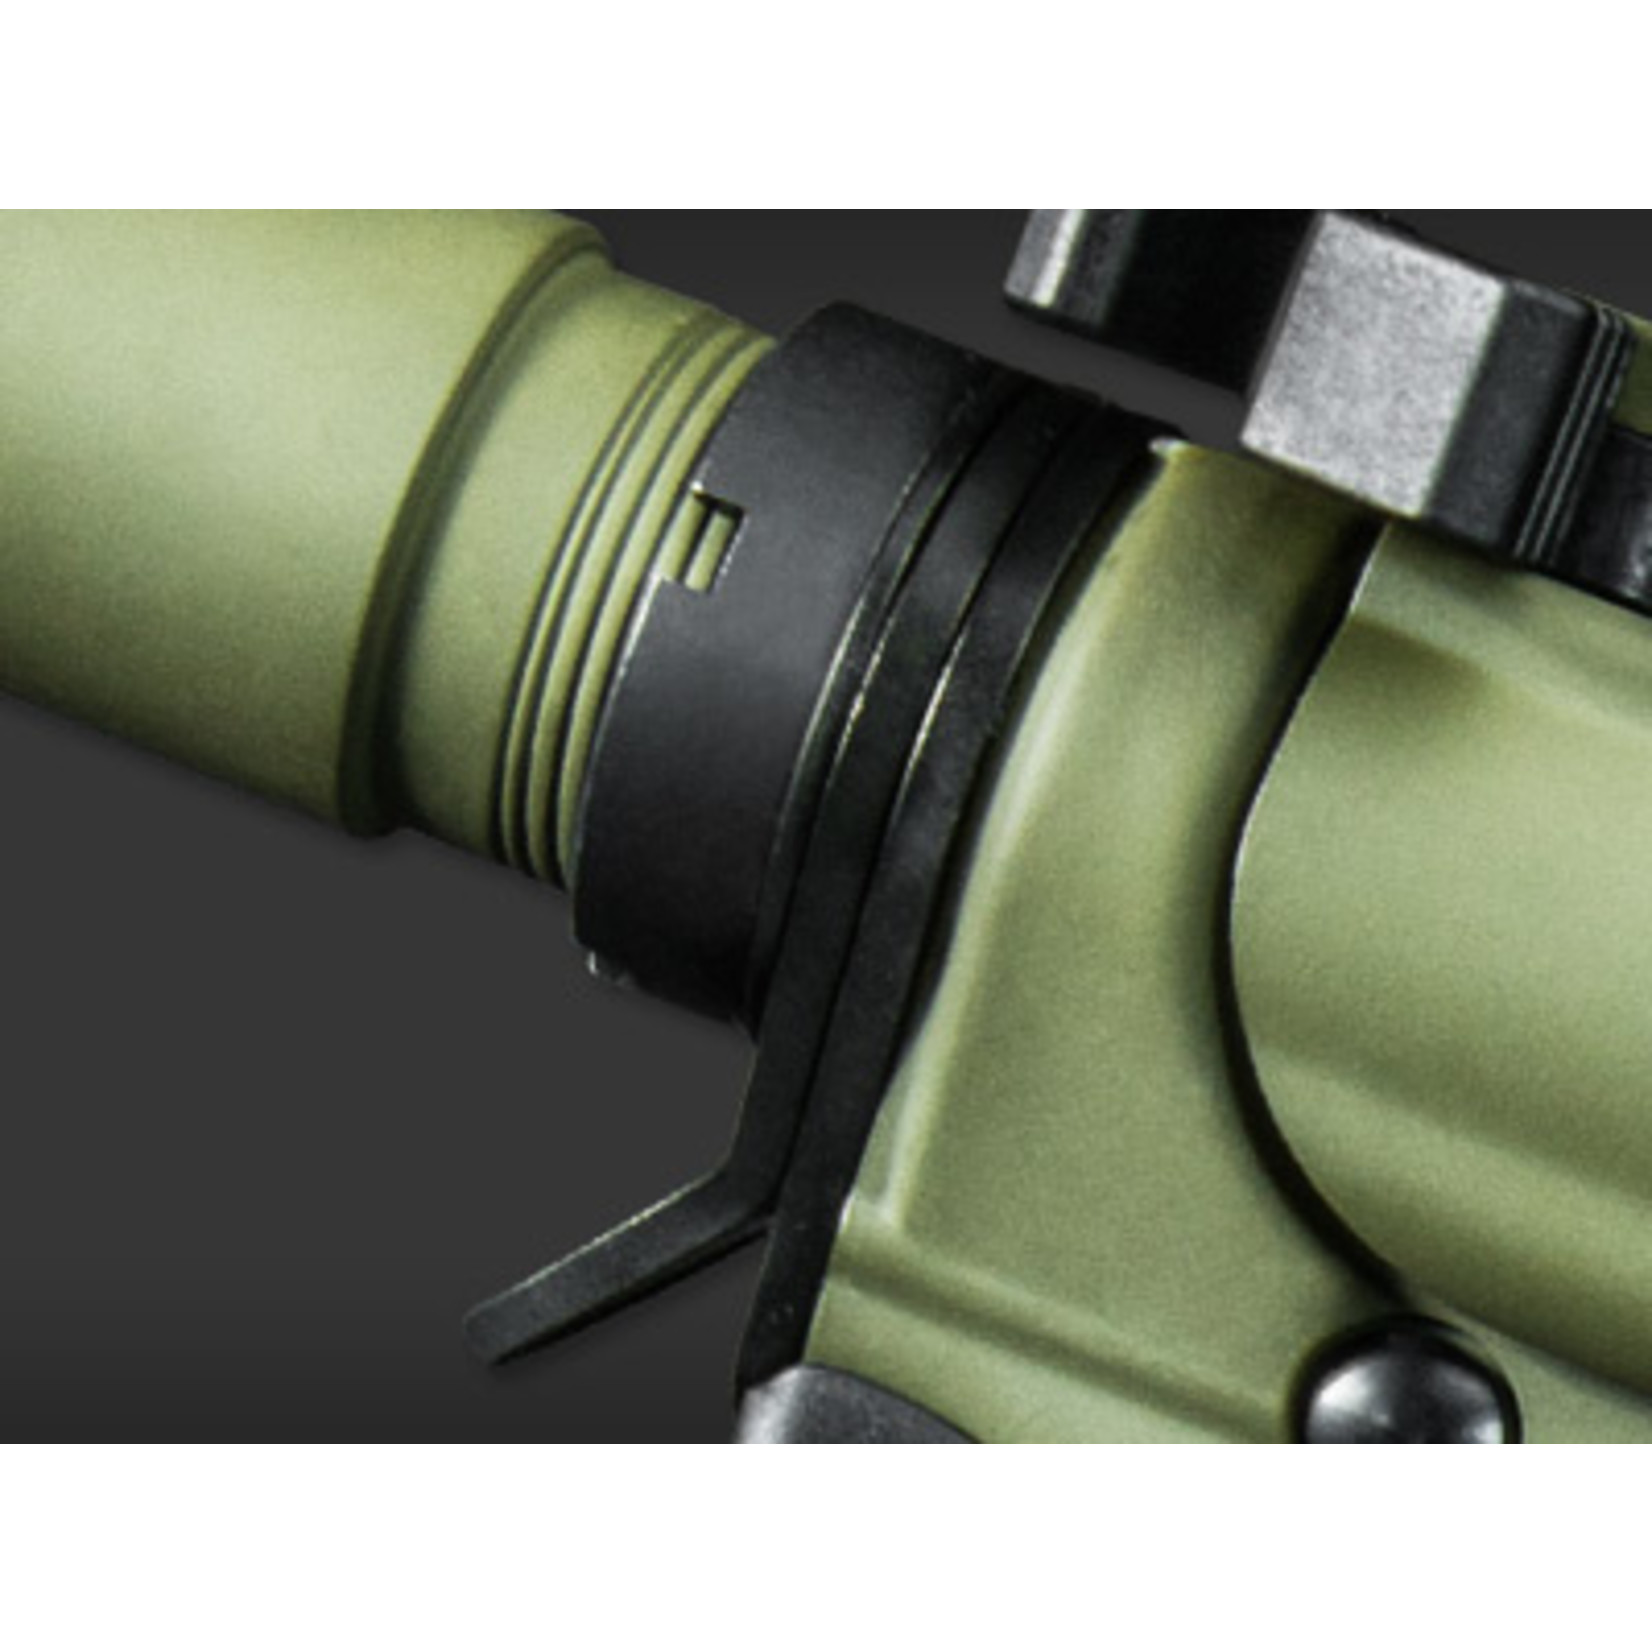 PHASE 5 WEAPON SYSTEMS REVOLVING SLING ATTACHMENT SOLUTION (REVO)